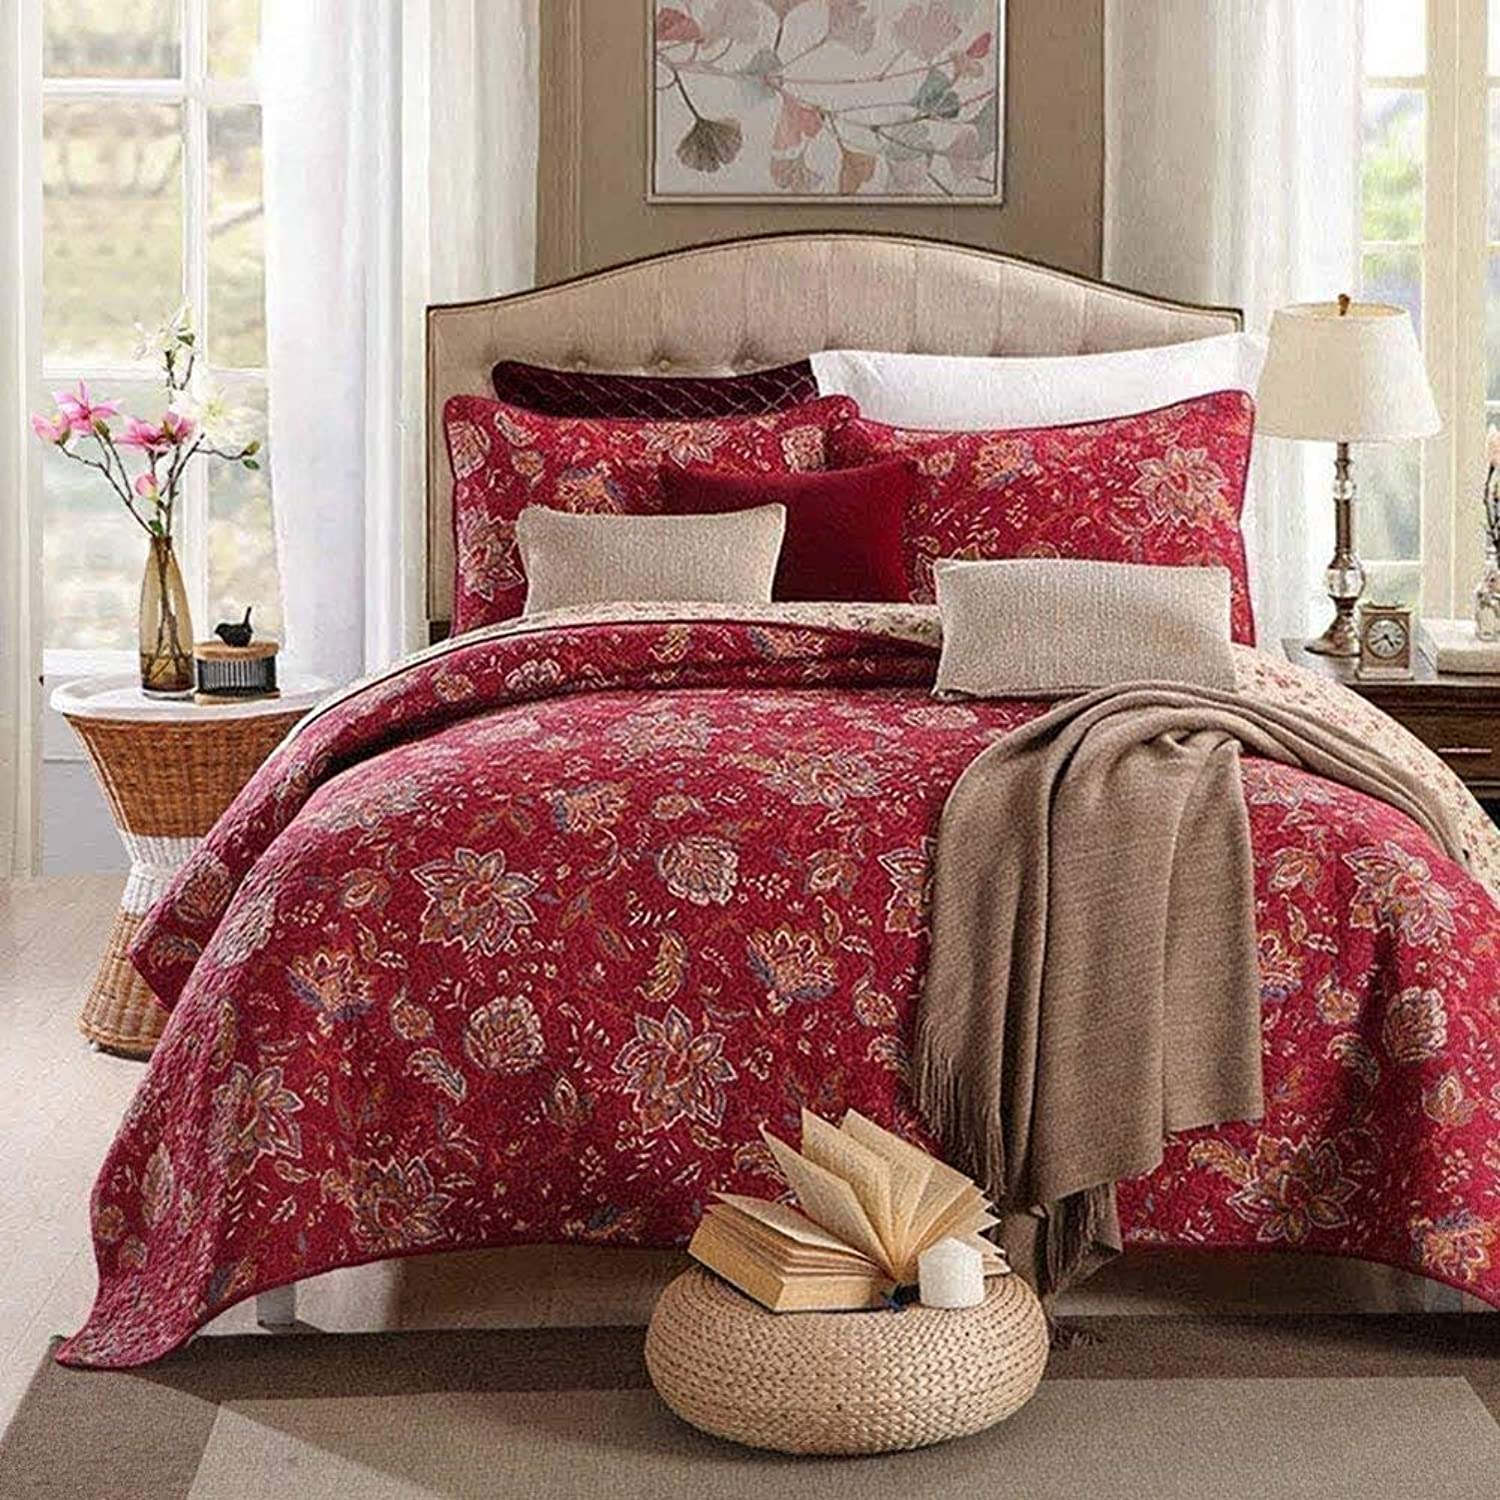 DOUH 3 Piece Quilt Set King Size(94 x106 ), Burgundy Flower Printed Patchwork Pattern, Lightweight Bedspread Coverlet Cover Set and Pillow Shams for All Season Bed Quilt Set